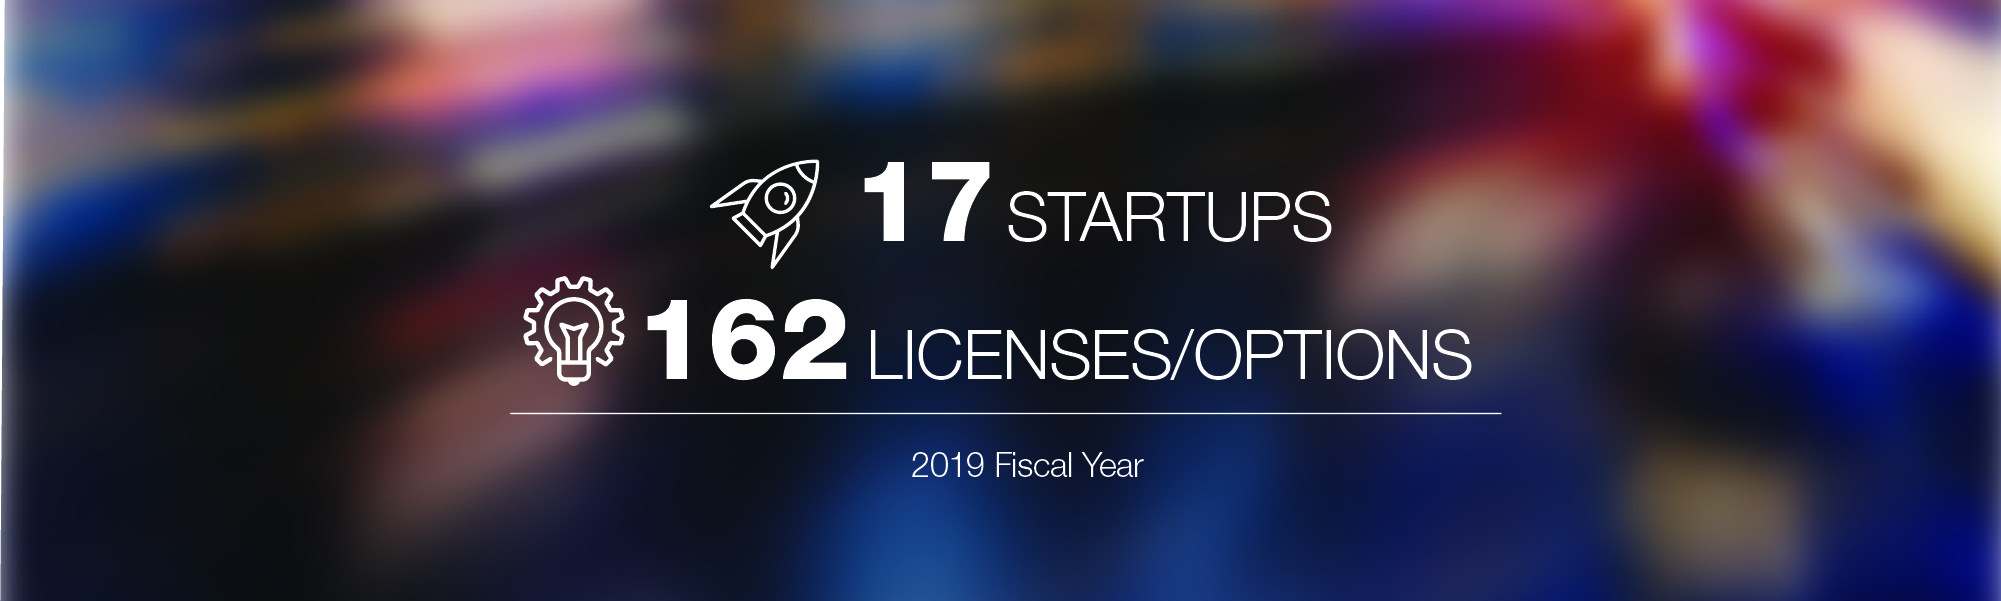 Startups Licenses 2019